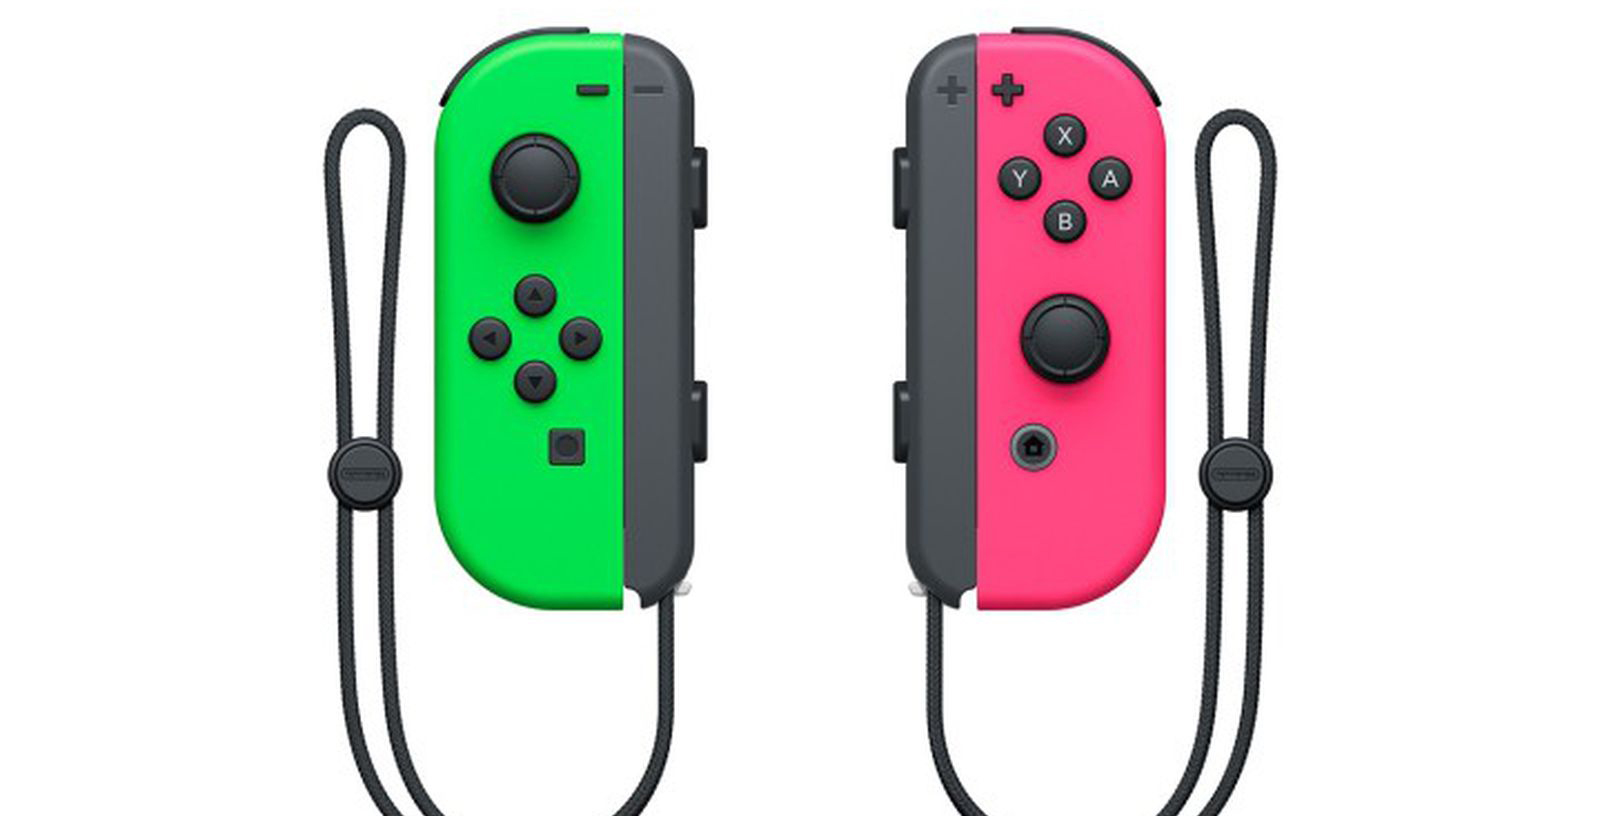 Nintendo Switch Green and Pink Joy-cons